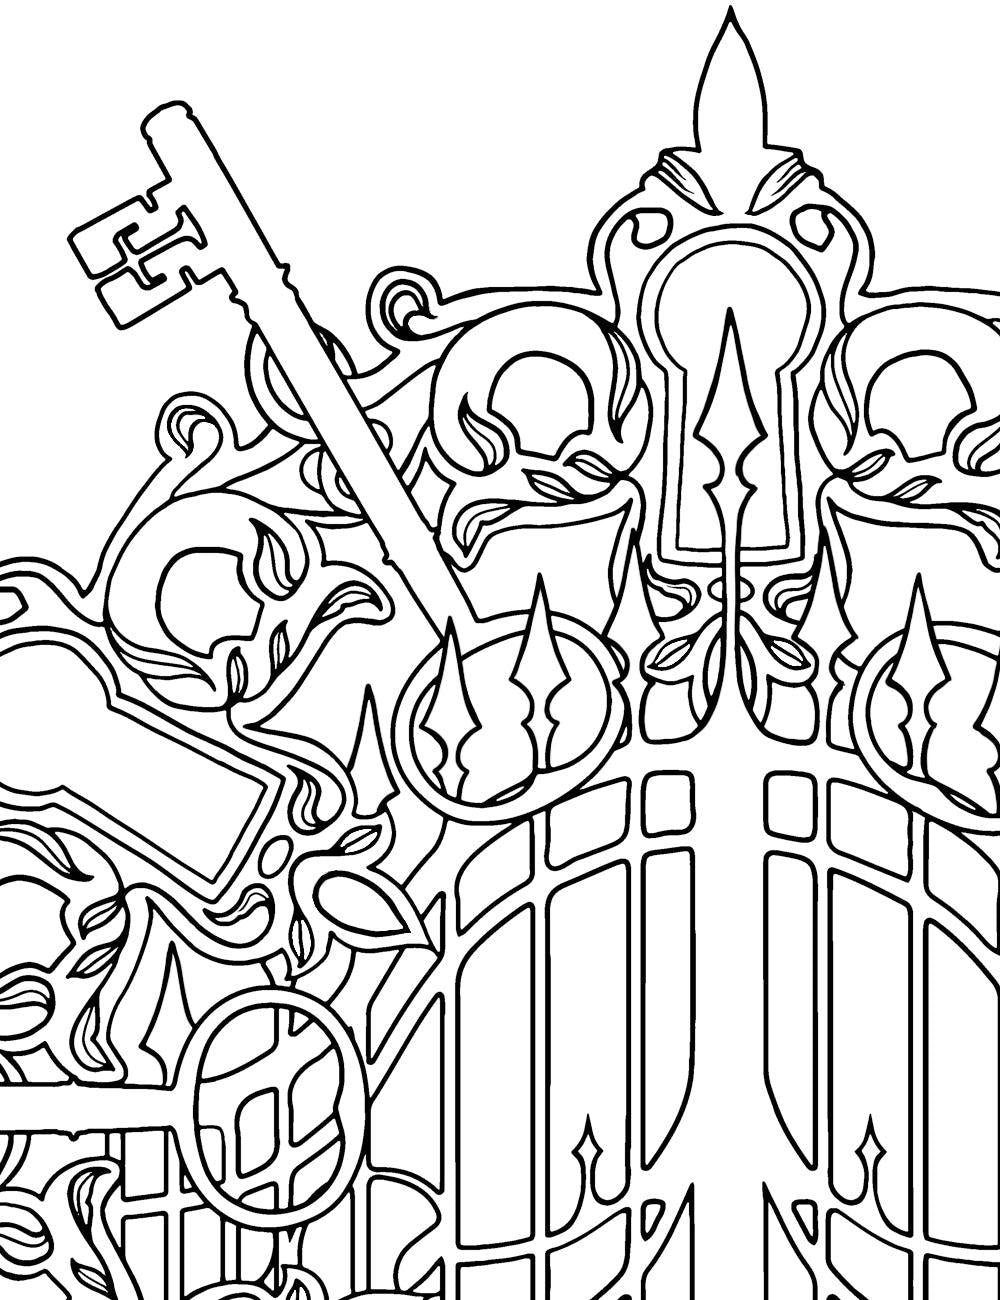 Asylum Coloring Book Page: Gate Keys